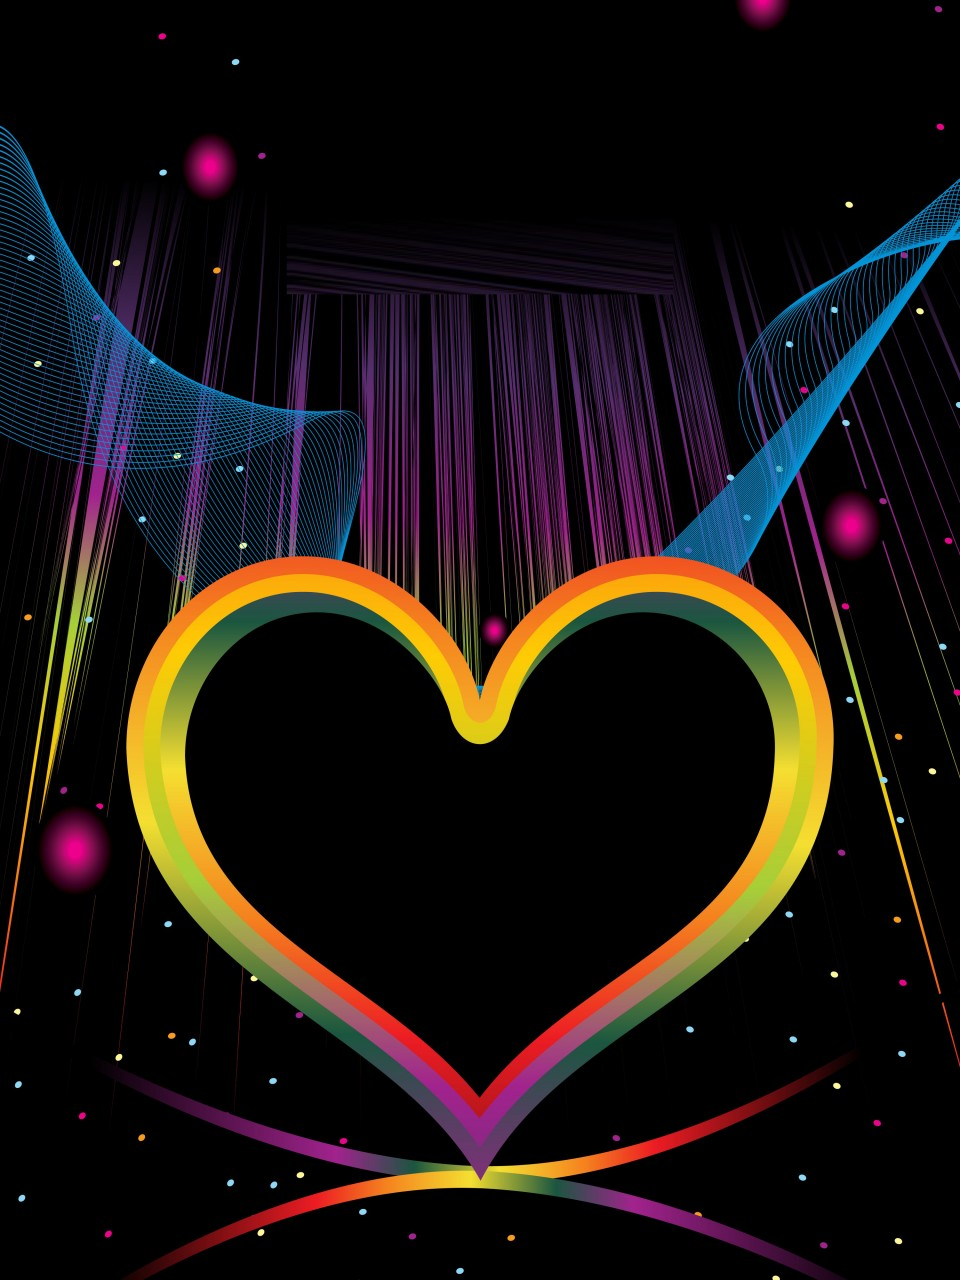 Colorful Hearts Wallpaper - WallpaperSafari